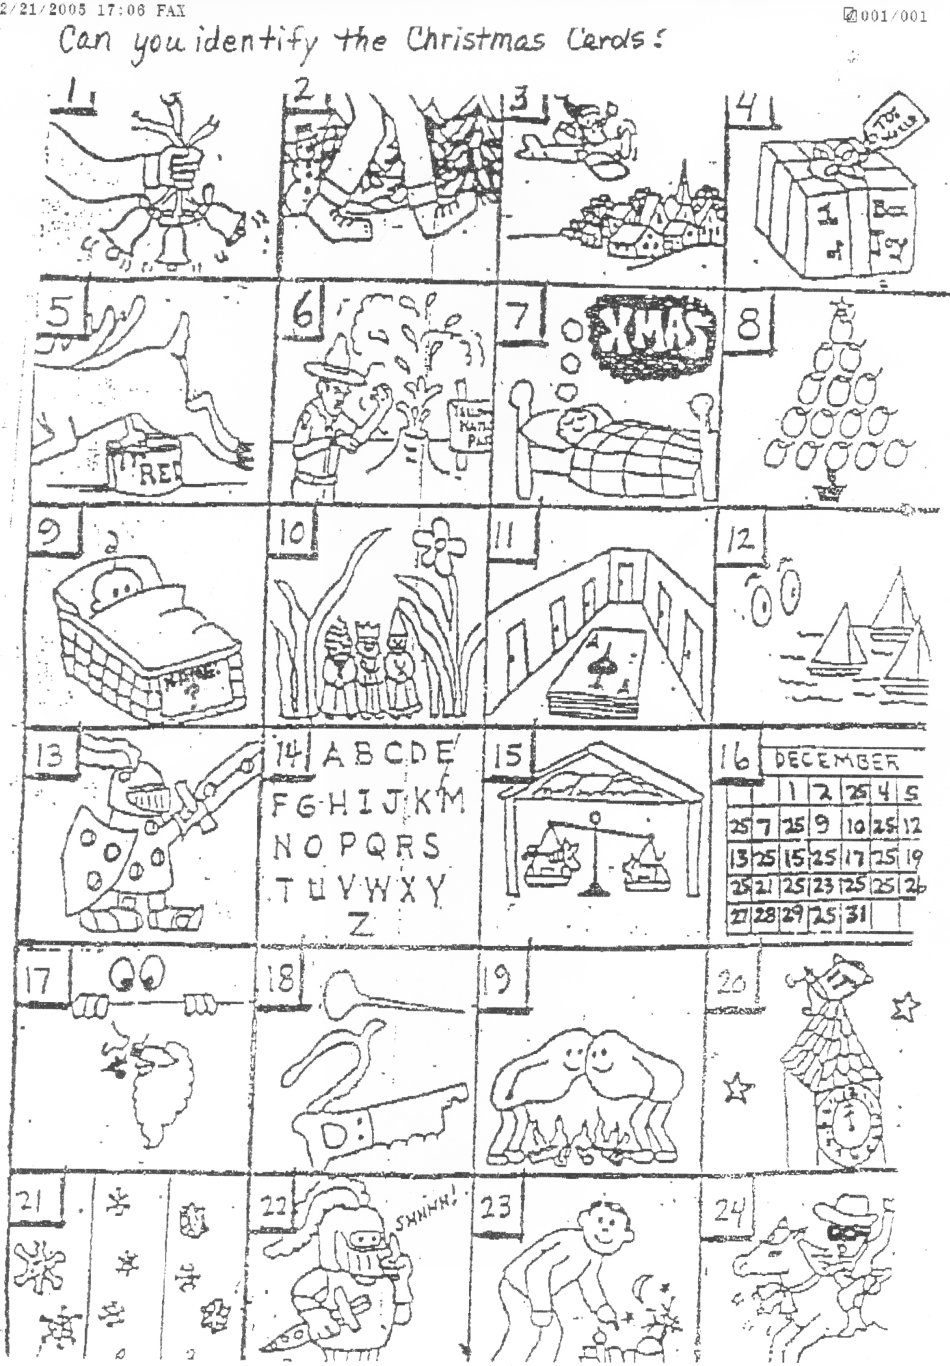 The Original Puzzle - Printable Christmas Rebus Puzzles